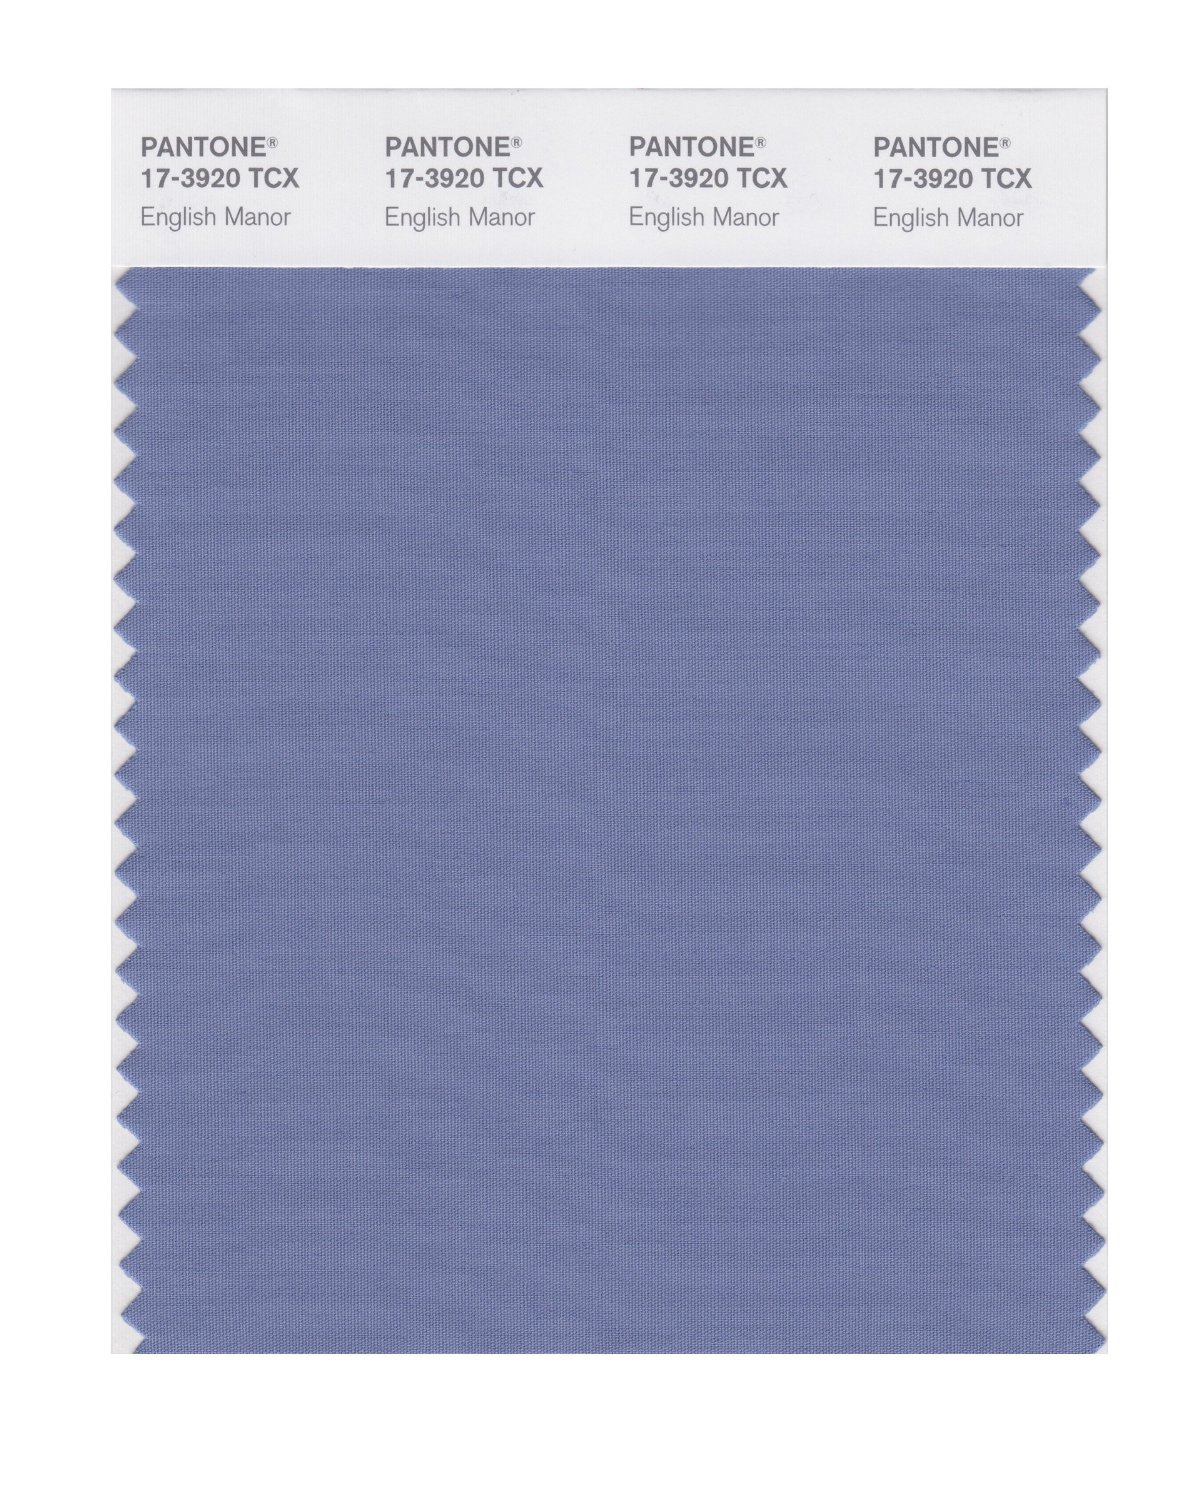 Pantone Smart Swatch 17-3920 English Manor